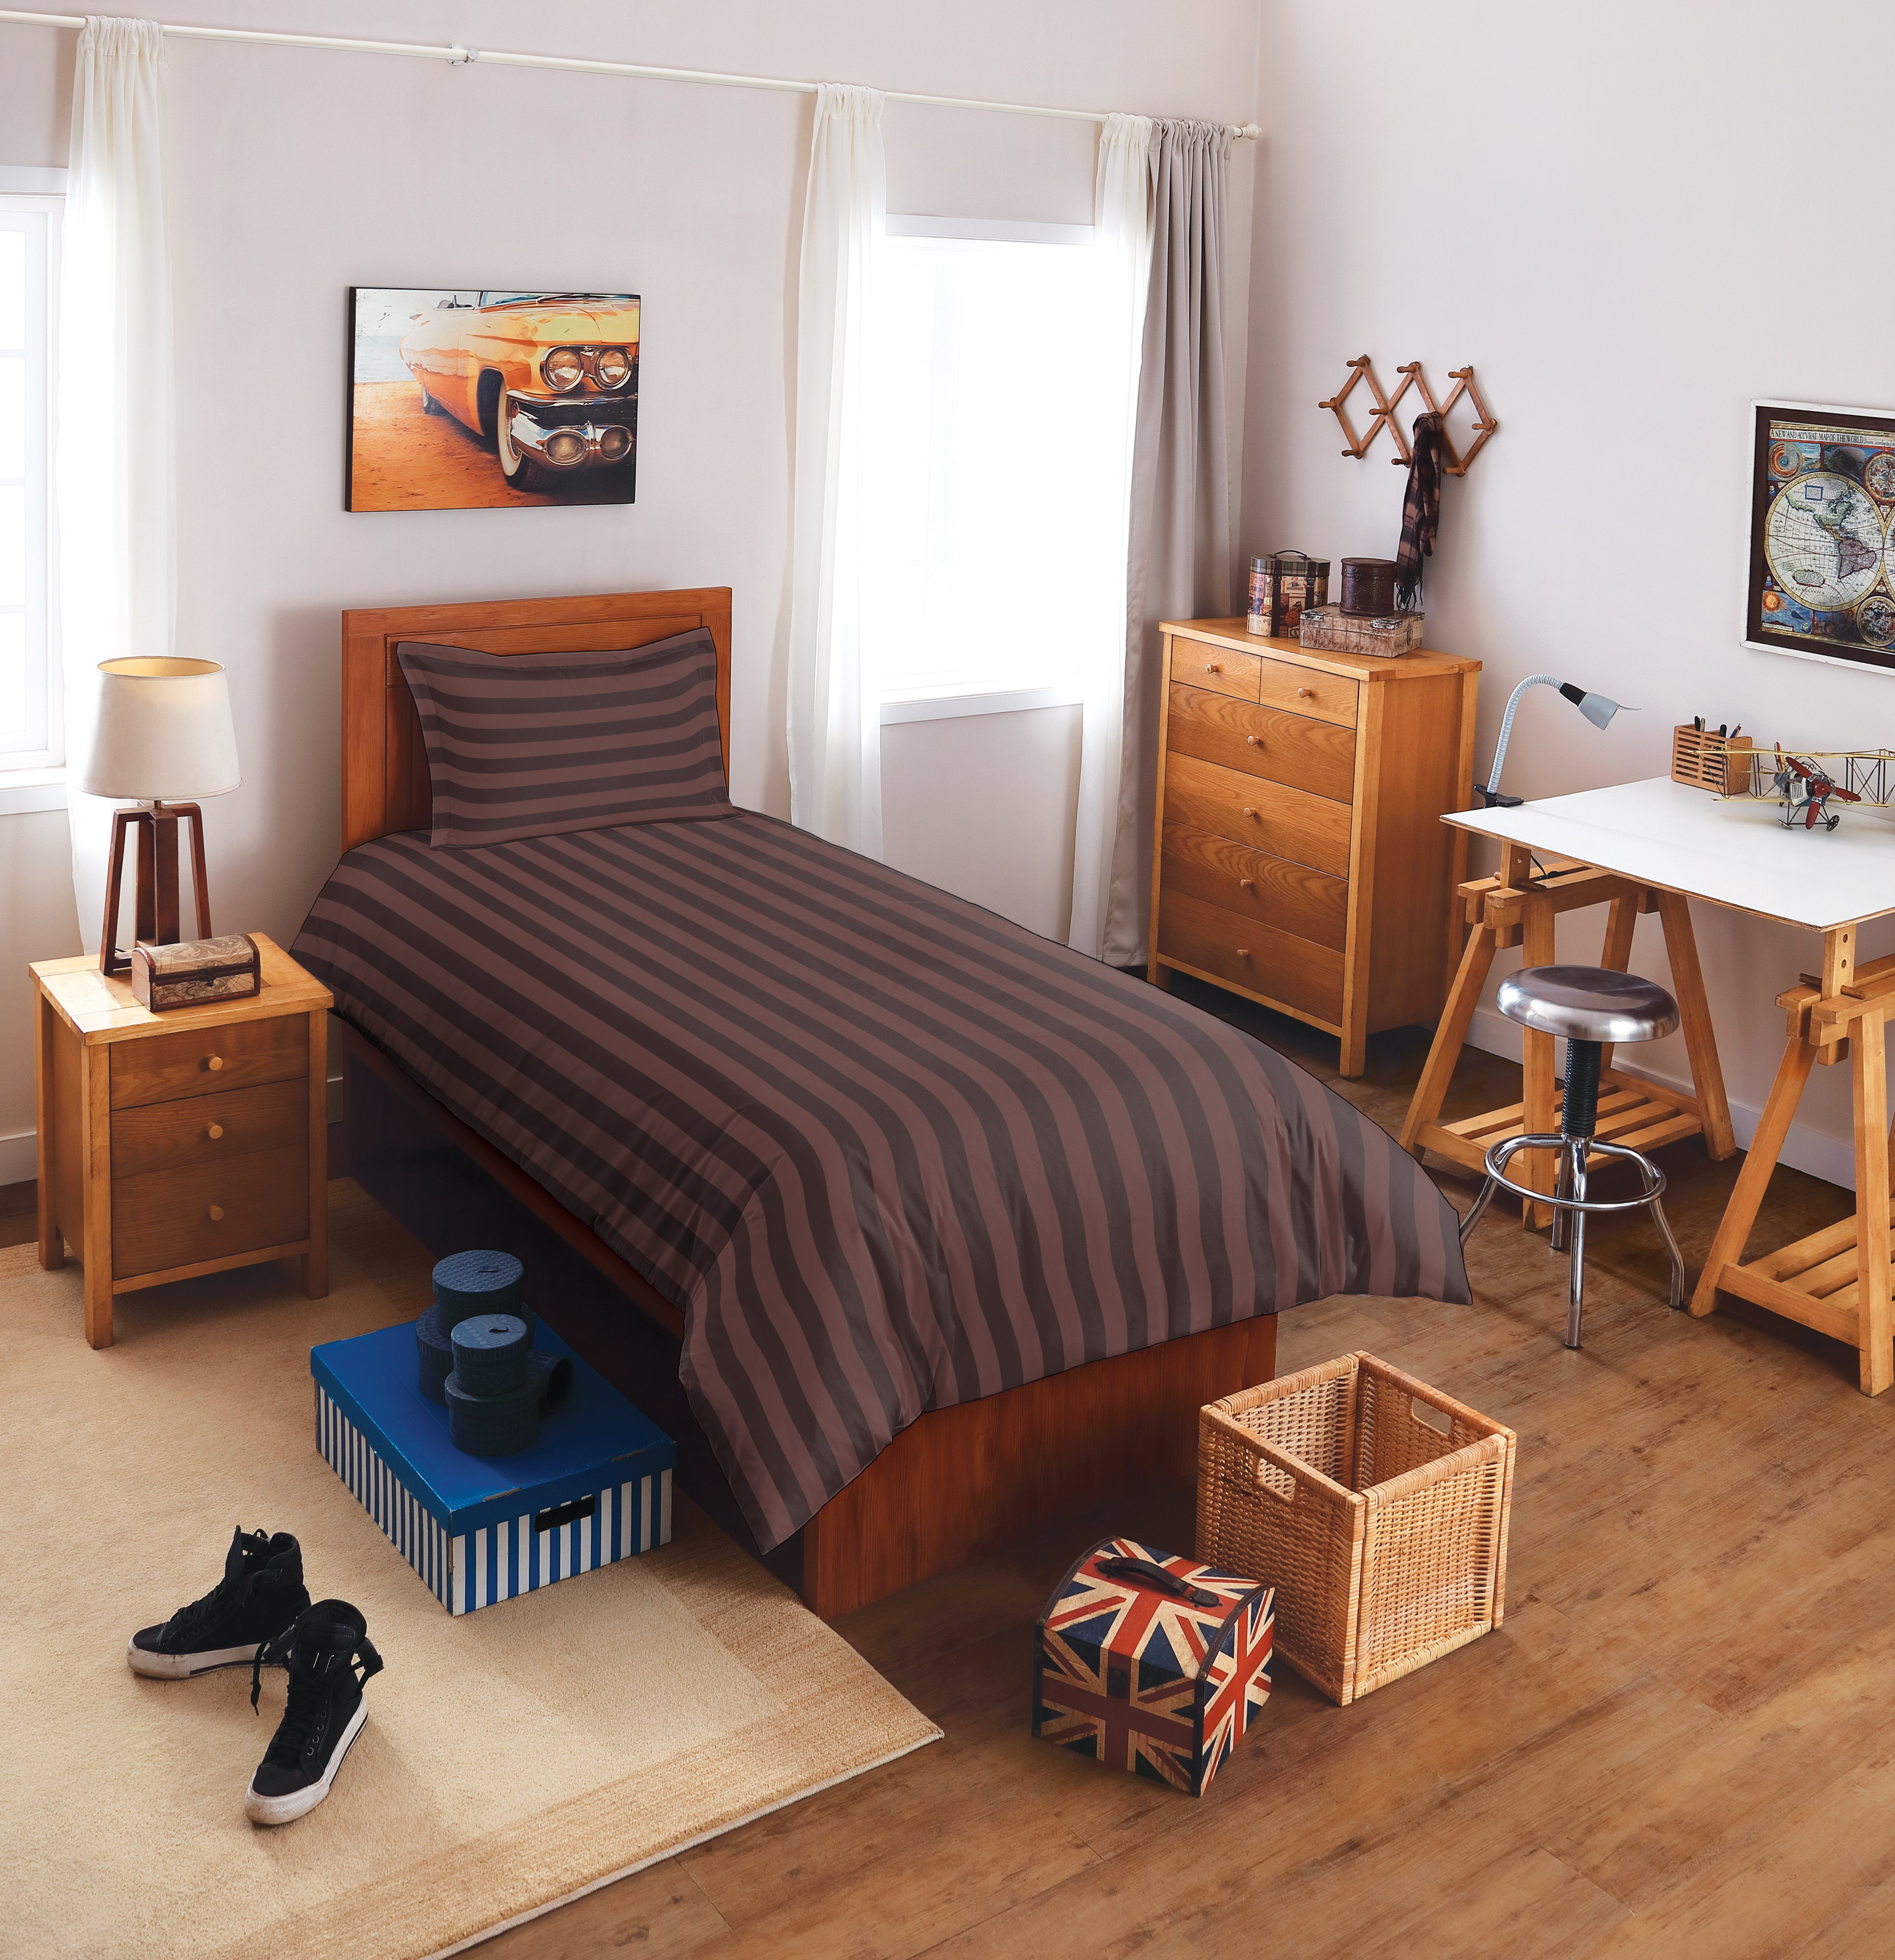 Spaces Sky Cotton Single Bed Sheets in Chocolate Colour by Spaces